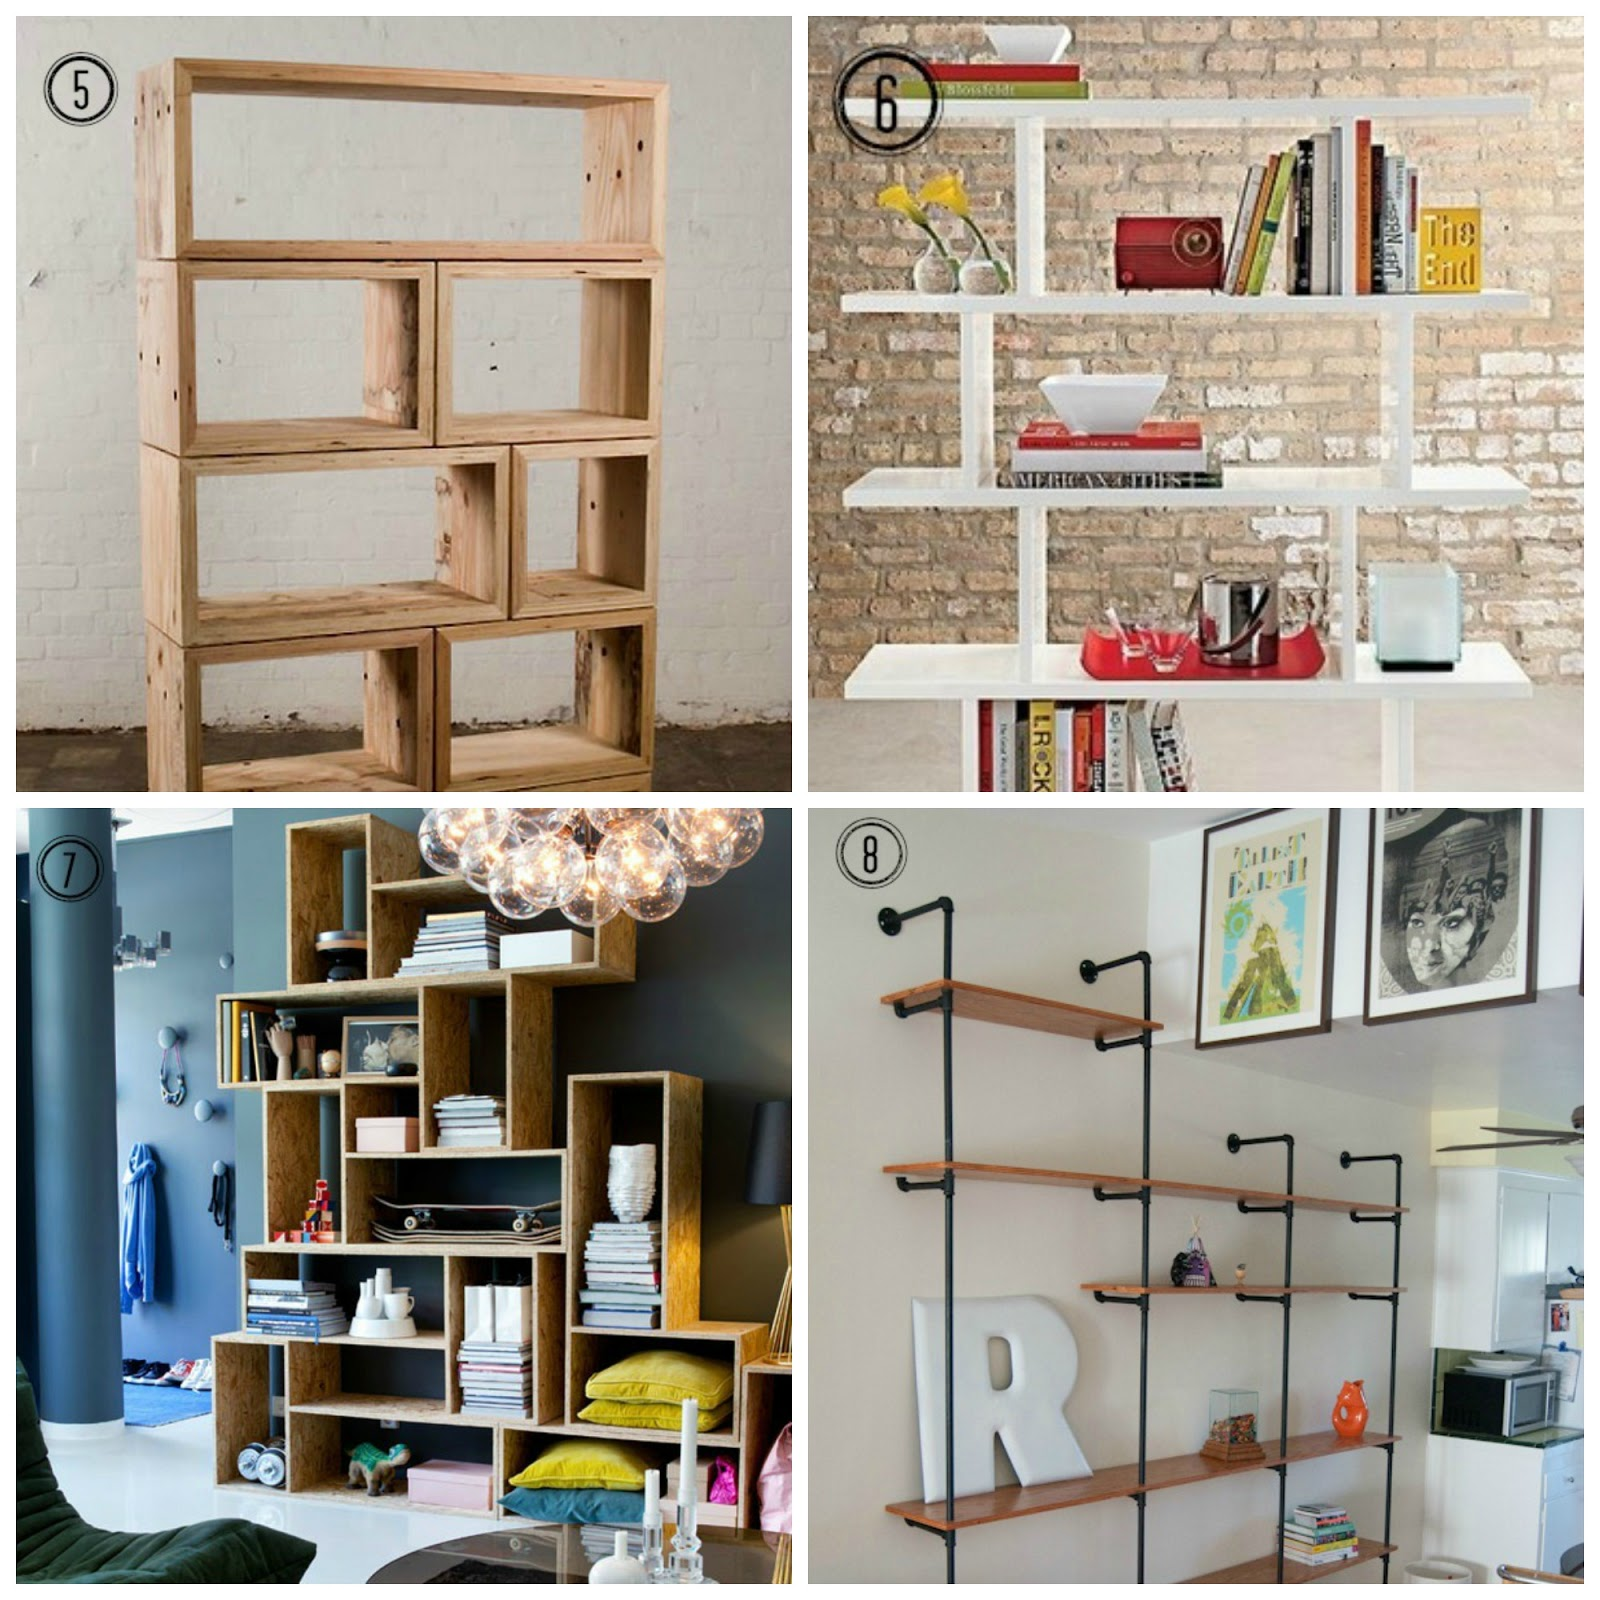 8 Diy Shelf Ideas Design Tendencies